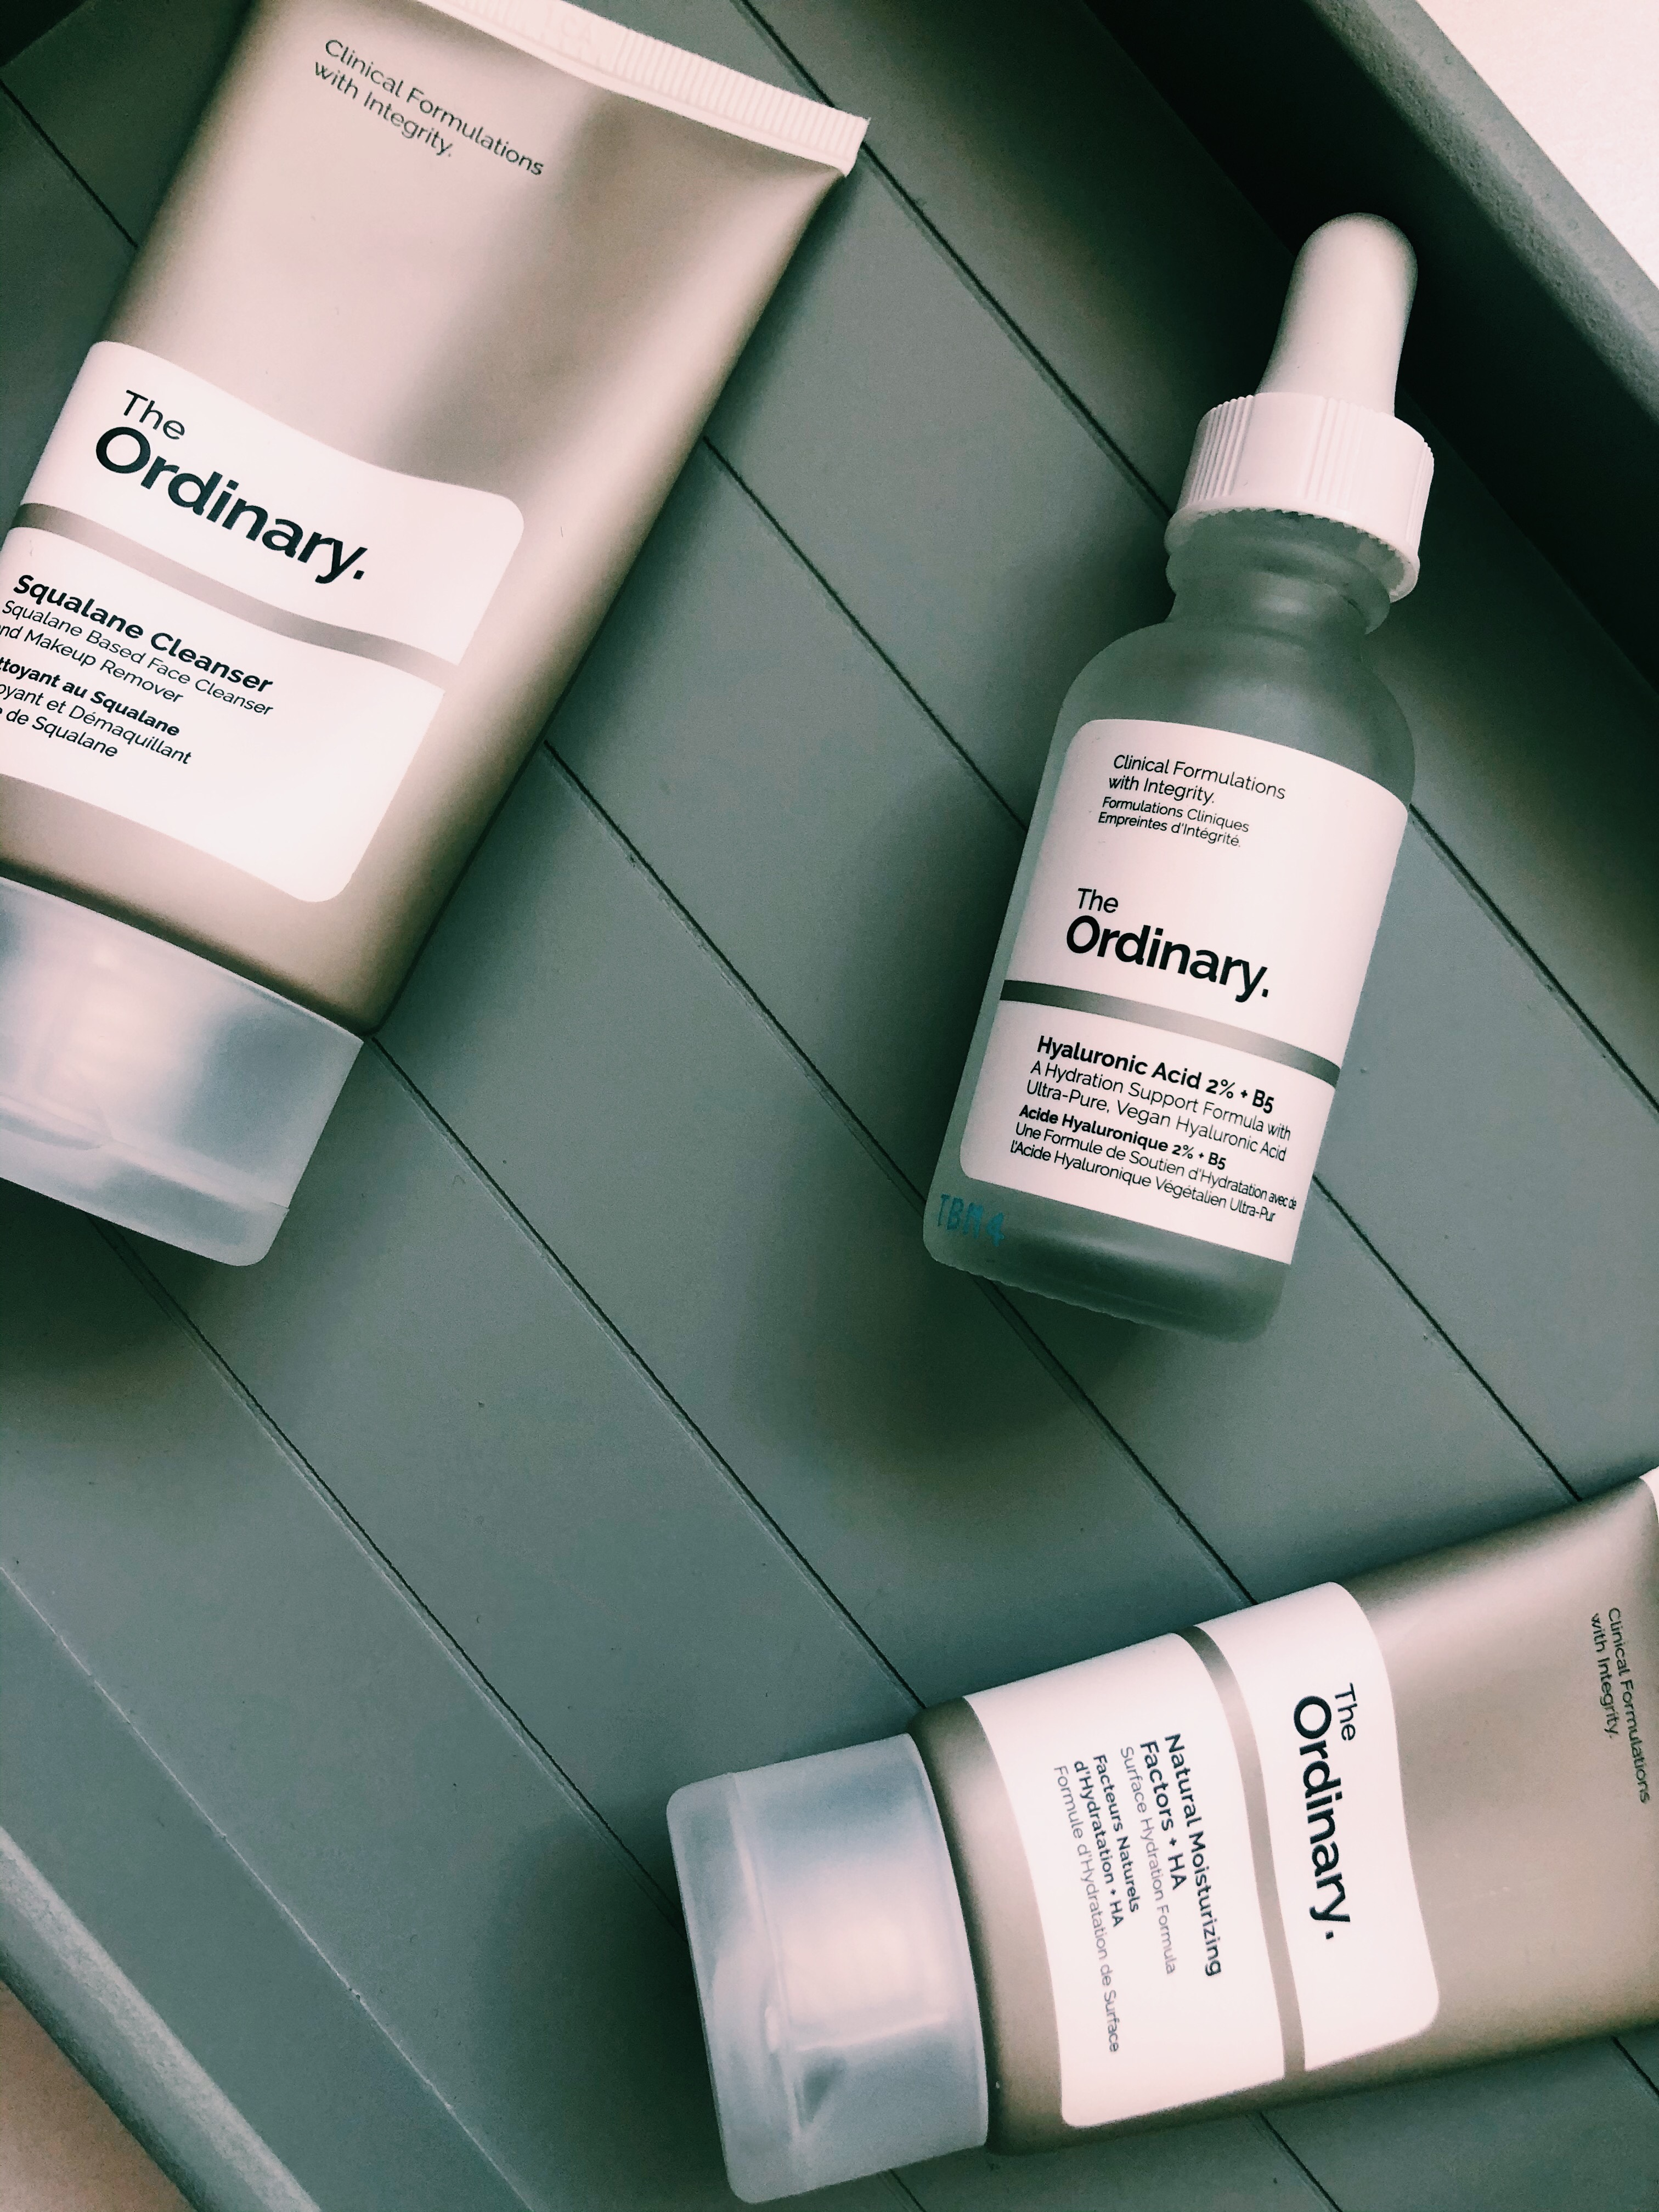 The Ordinary 'The Daily Set'